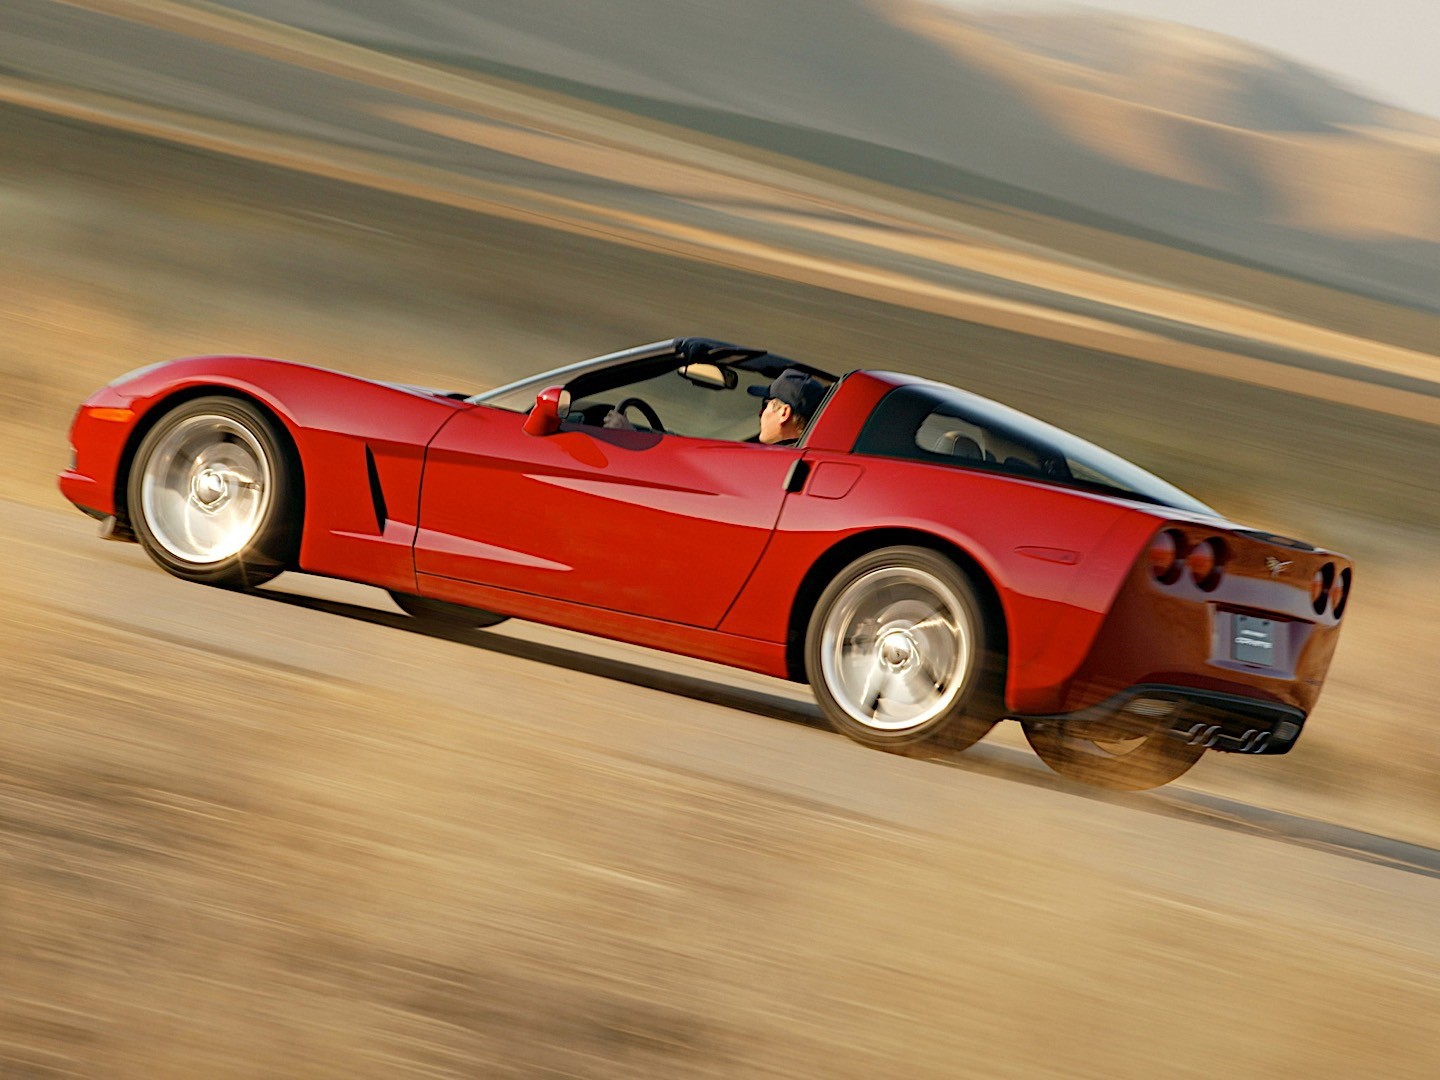 CHEVROLET Corvette C6 Coupe specs - 2004, 2005, 2006, 2007 ...